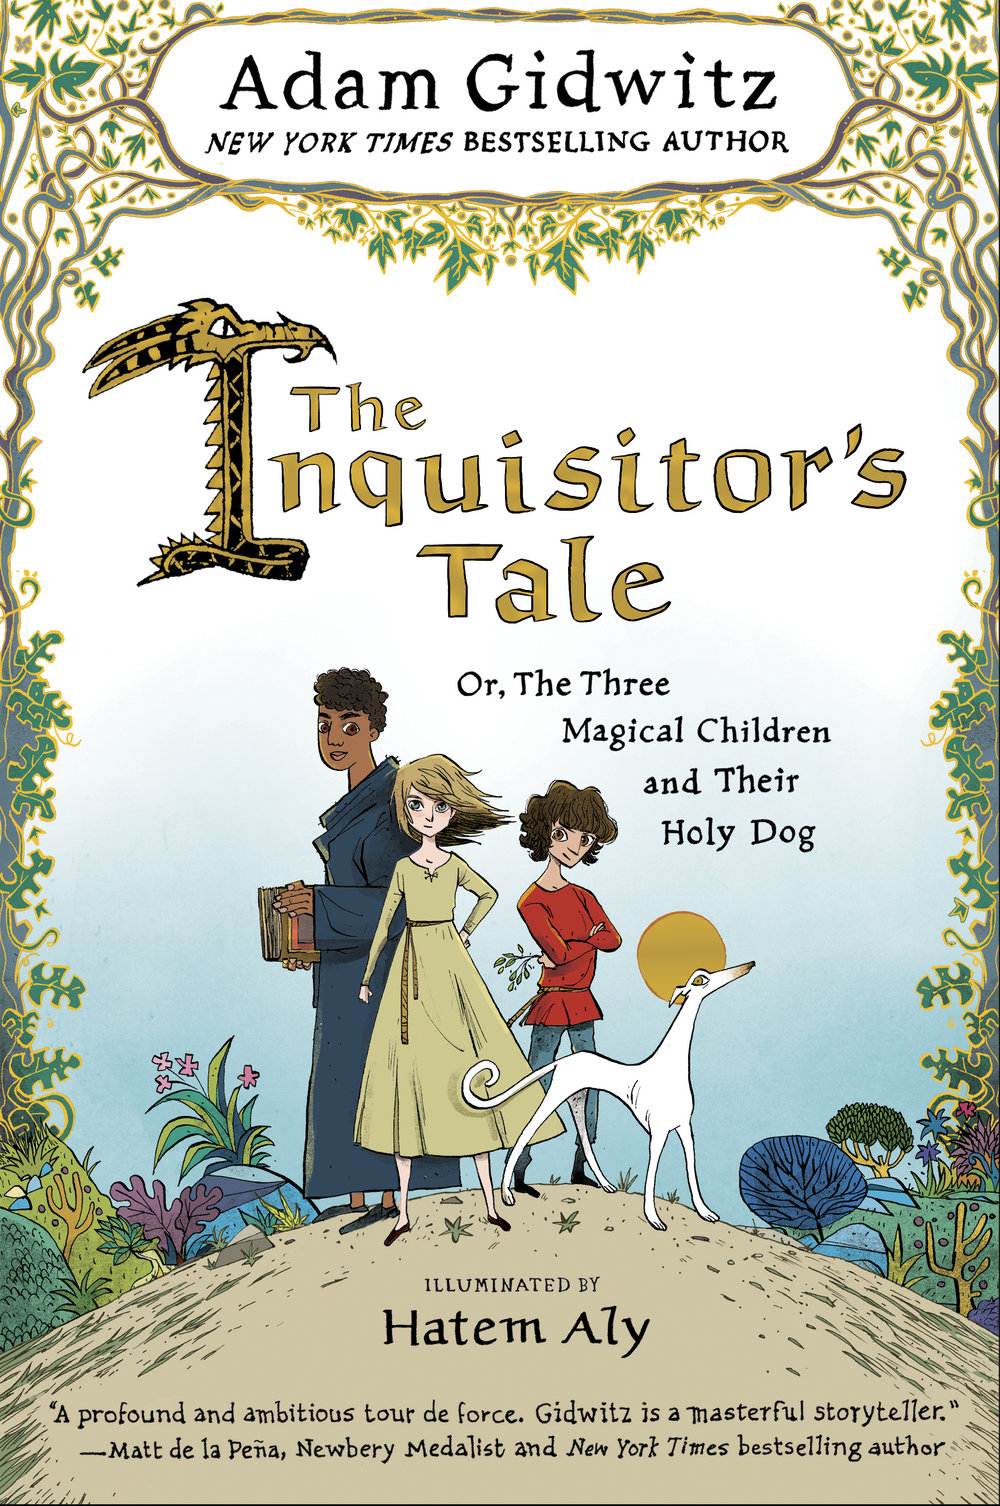 The Inquisitors Tale Or, The Three Magical Children and Their Holy Dog  by Adam Gidwitz